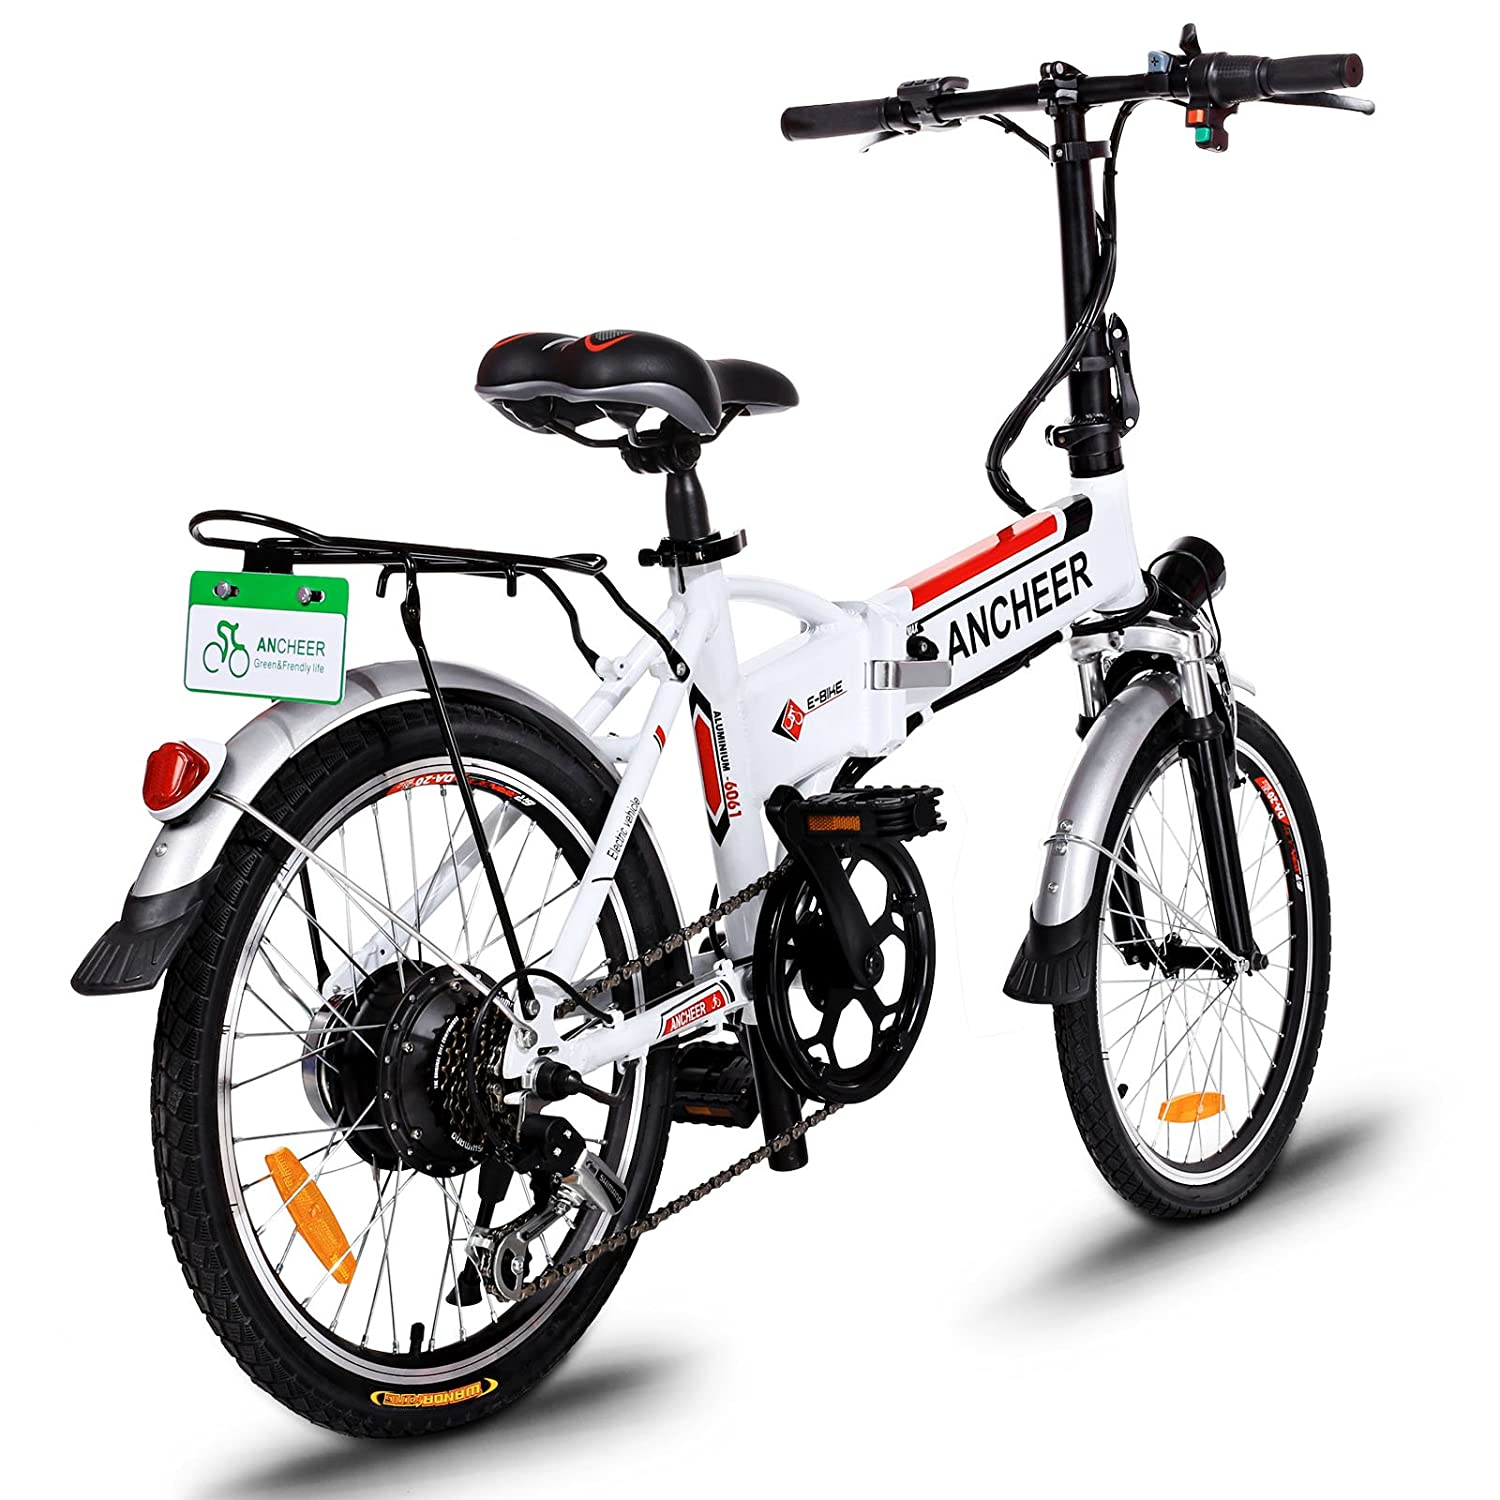 Ancheer bicicleta eectrique plegable 20